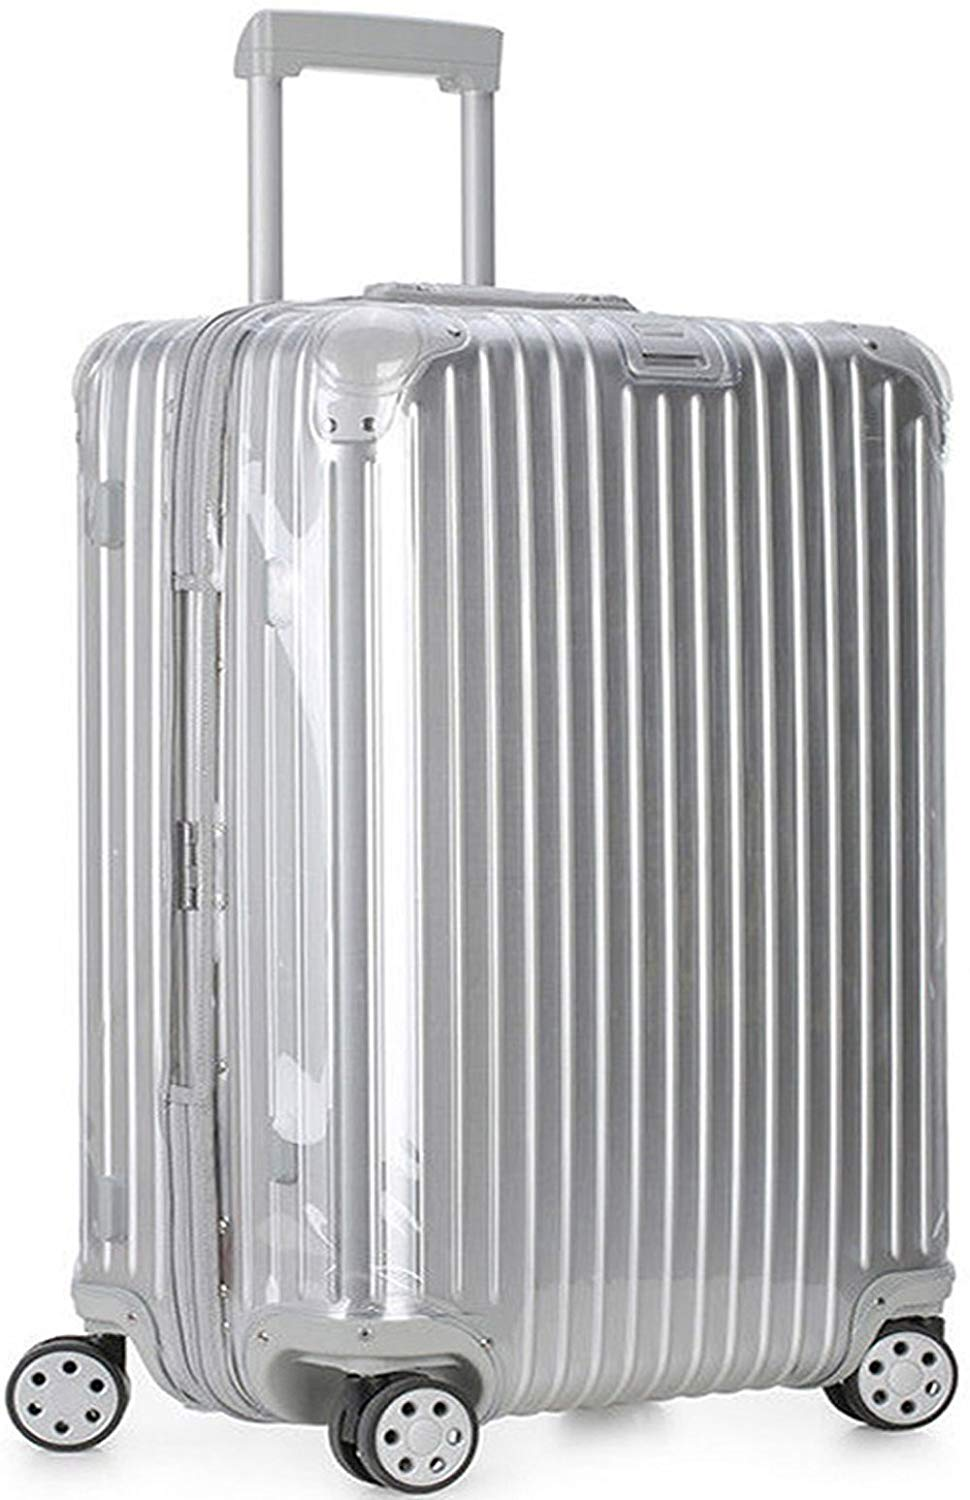 Rimowa Topas Luggage Cover Protector Clear PVC Suitcase Protective Case with Zipper